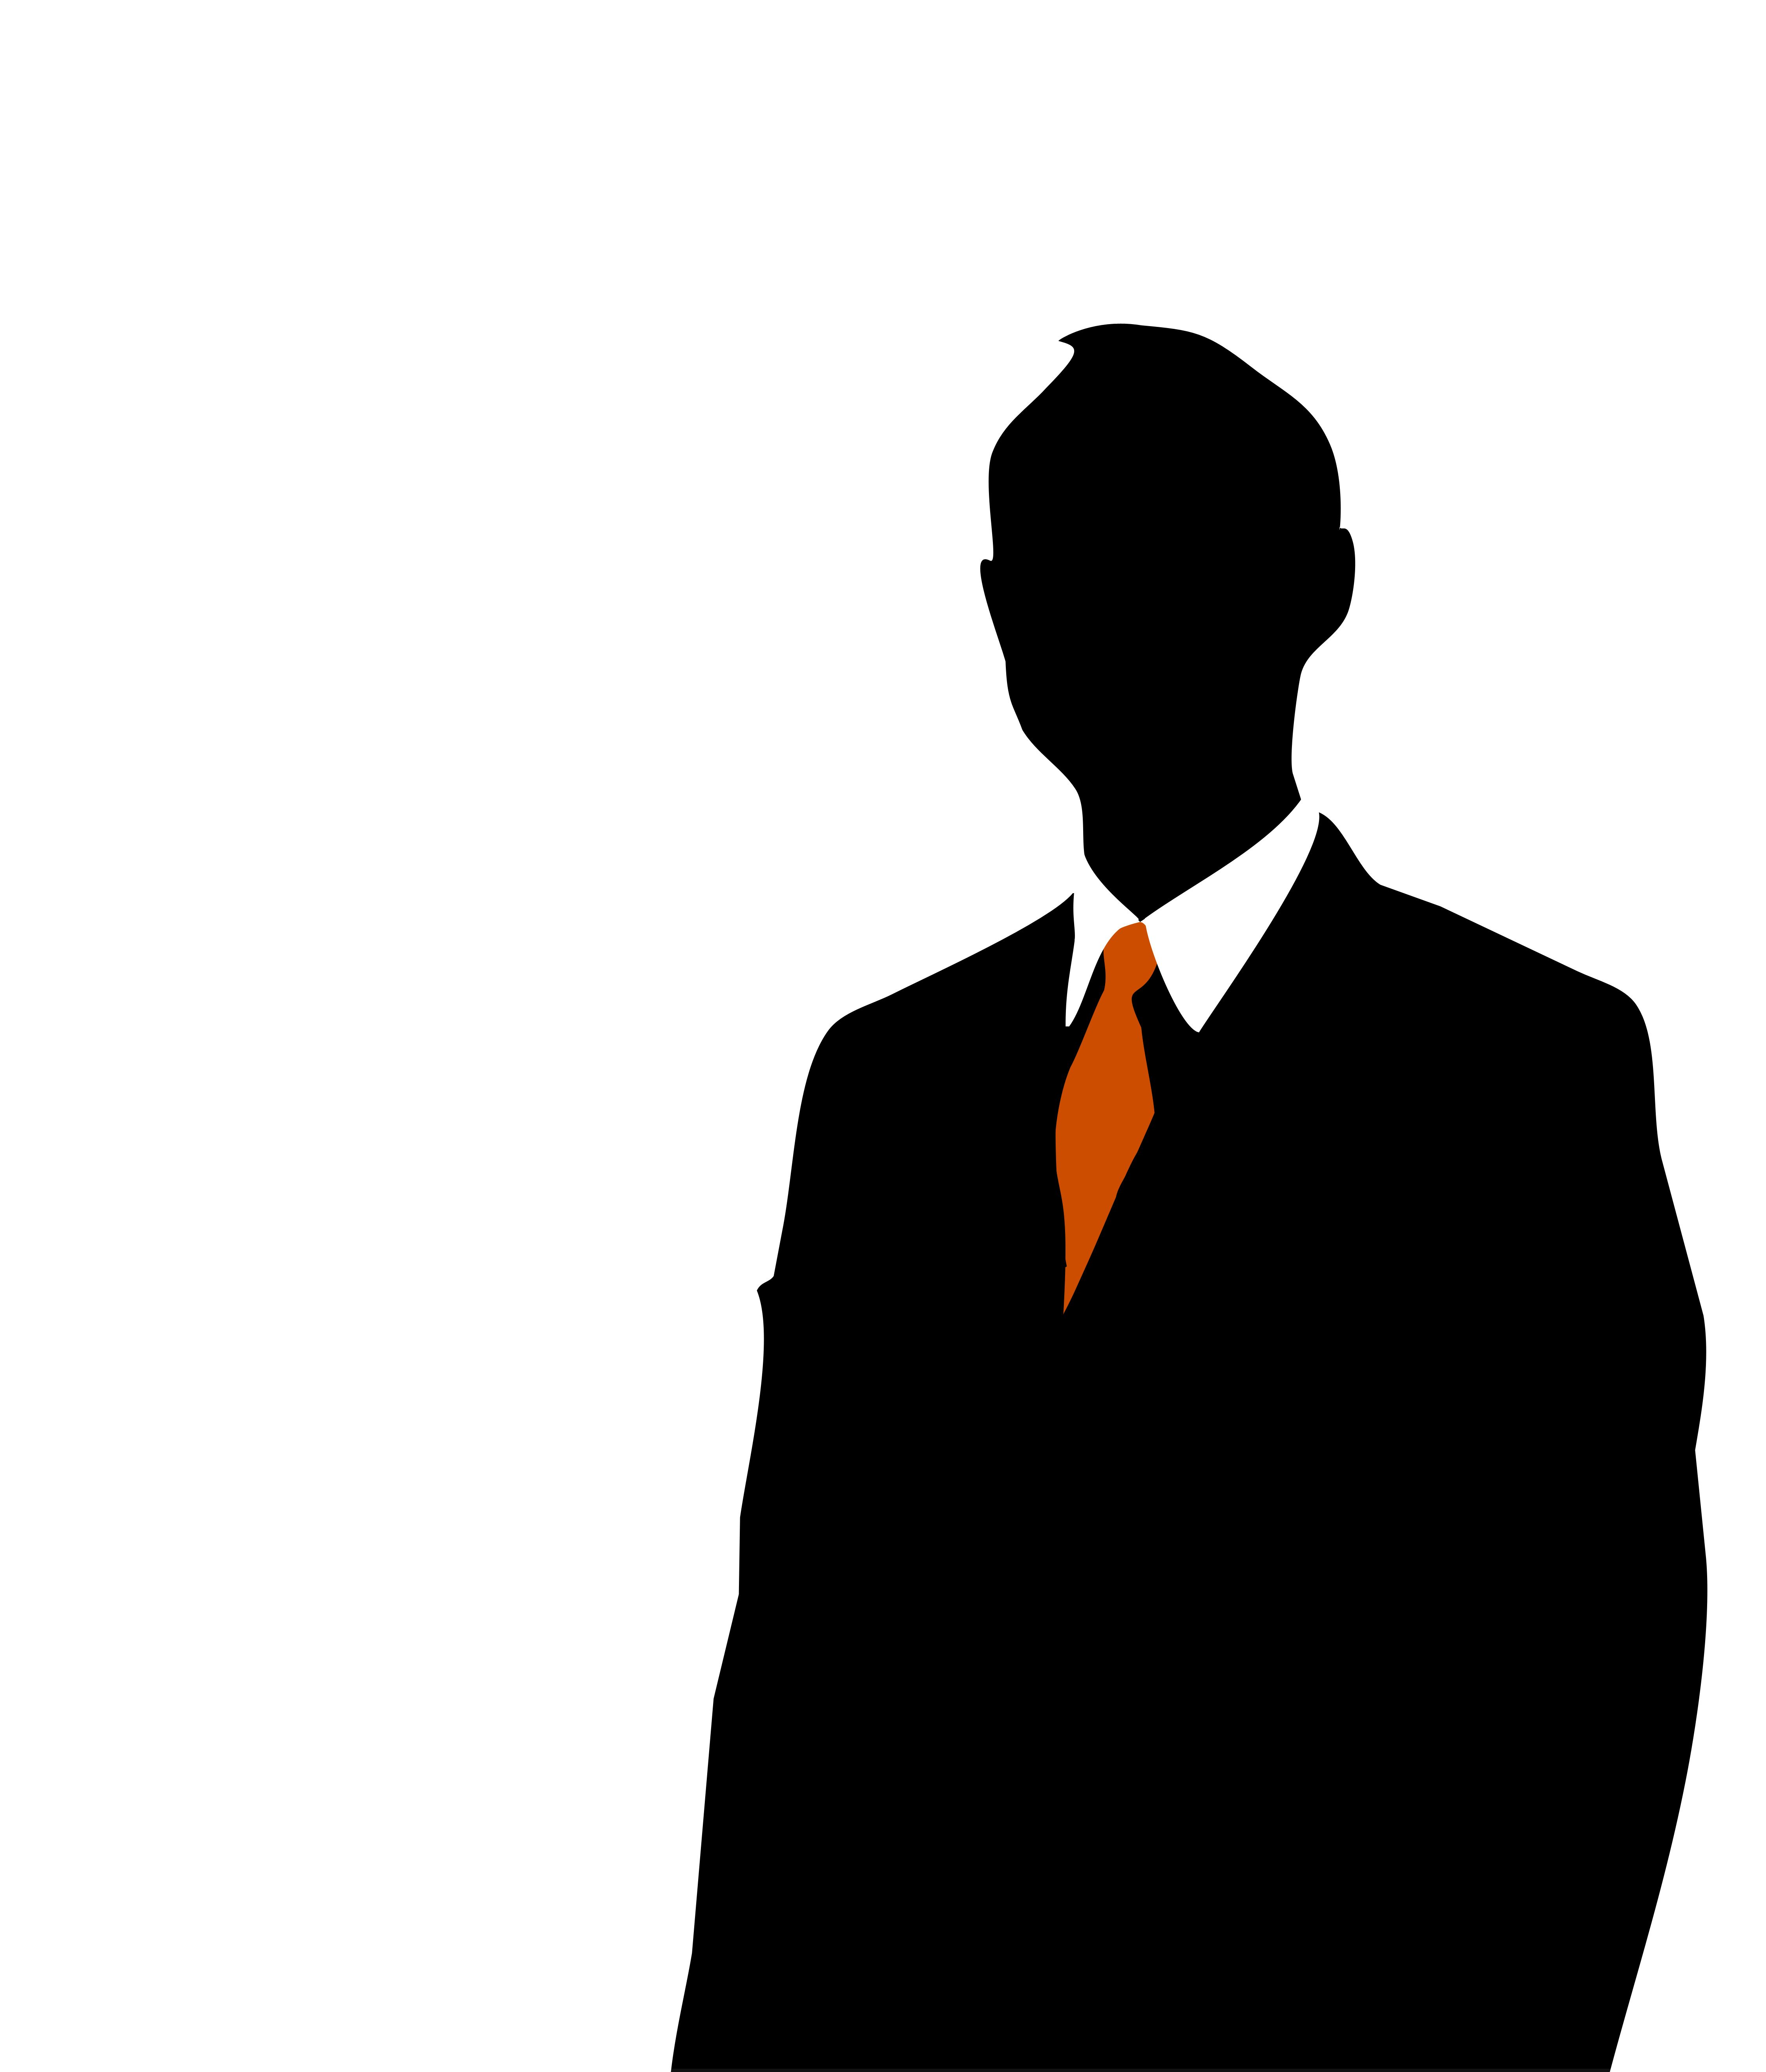 Person silhouette clipart 3 » Clipart Station.